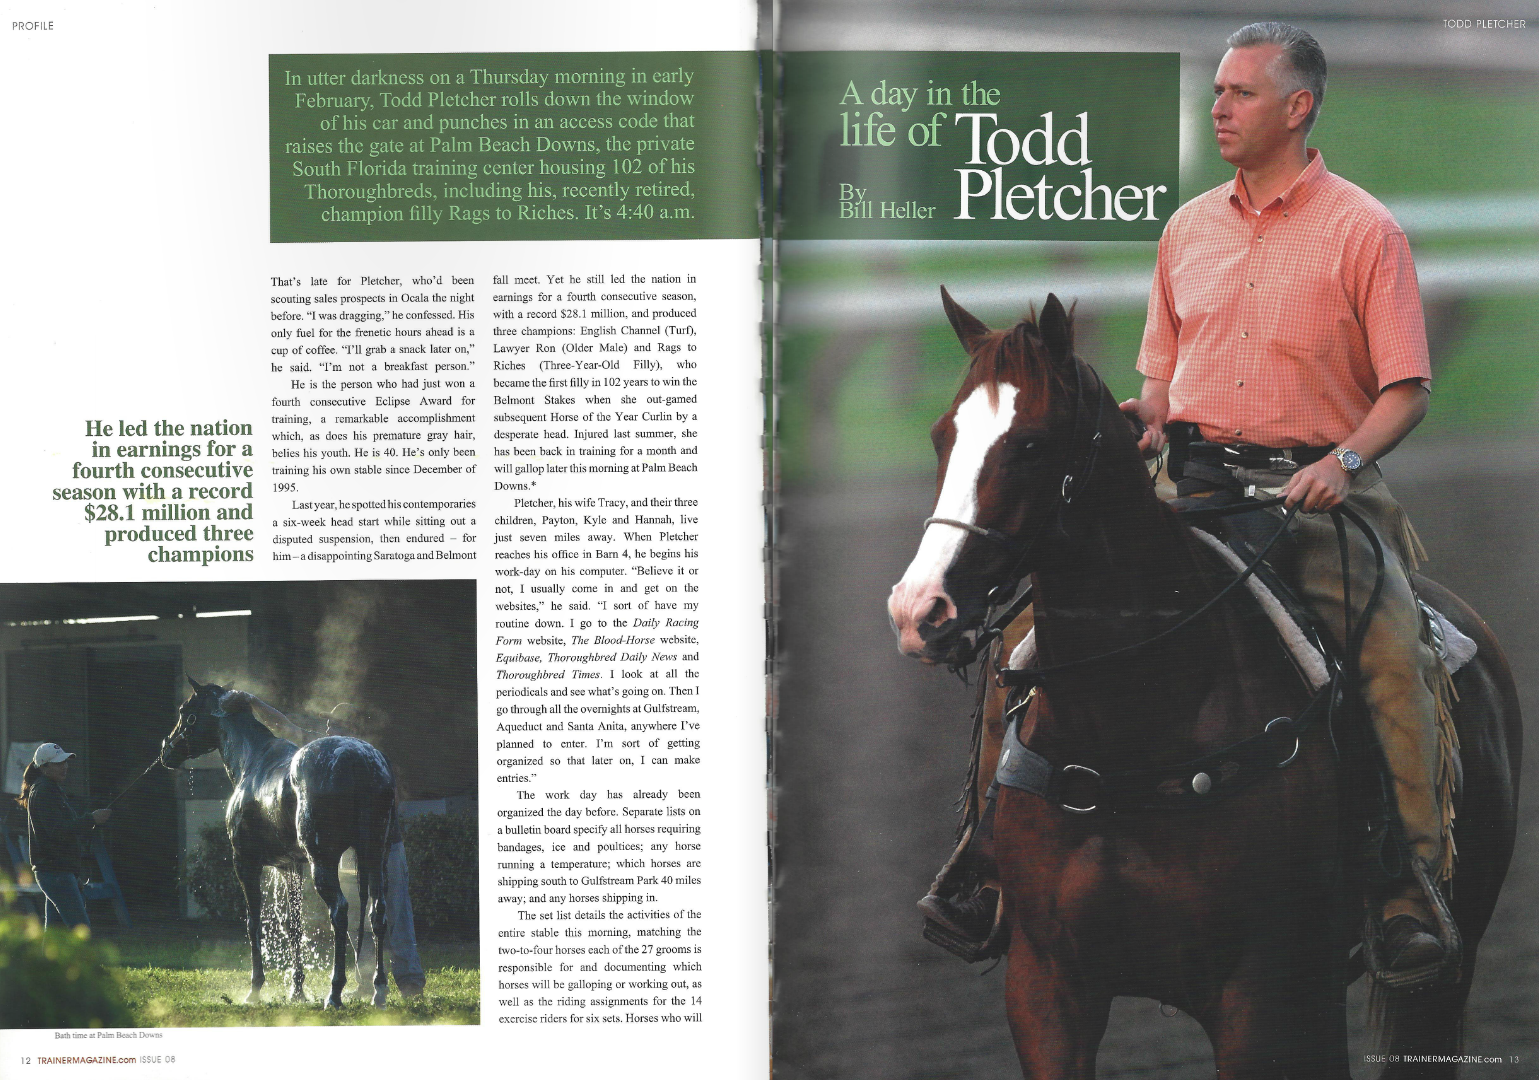 """In utter darkness on a Thursday morning in early February, Todd Pletcher rolls down the window of his car and punches in an access code that raises the gate at Palm Beach Downs, the private South Florida training center housing 102 of his Thoroughbreds, including his, recently retired, champion filly Rags to Riches. It's 4:40 a.m. That's late for Pletcher, who'd been scouting sales prospects in Ocala the night before. """"I was dragging,"""" he confessed. His only fuel for the frenetic hours ahead is a cup of coffee. """"I'll grab a snack later on,"""" he said. """"I' not a breakfast person.""""He is the person who had just won a fourth consecutive Eclipse Award for training, a remarkable accomplishment which, as does his premature gray hair, belies his youth. He is 40. He' only been training his own stable since December of 1995.   Last year, he spotted his contemporaries a six-week head start while sitting out a disputed suspension, then endured – for him – a disappointing Saratoga and Belmont fall meet. Yet he still led the nation in earnings for a fourth consecutive season, with a record $28.1 million, and produced three champions: English Channel (Turf), Lawyer Ron (Older Male) and Rags to Riches (Three-Year-Old Filly), who became the first filly in 102 years to win the Belmont Stakes when she out-gamed subsequent Horse of the Year Curlin by a desperate head. Injured last summer, she has been back in training for a month and will gallop later this morning at Palm Beach Downs.*   Pletcher, his wife Tracy, and their three children, Payton, Kyle and Hannah, live just seven miles away. When Pletcher reaches his office in Barn 4, he begins his work-day on his computer.""""Believe it or not, I usually come in and get on the websites,""""he said.""""I sort of have my routine down. I go to the Daily Racing Form website, The Blood-Horse website, Equibase, Thoroughbred Daily News and Thoroughbred Times. I look at all the periodicals and see what's going on. Then I go through all the overnights at """